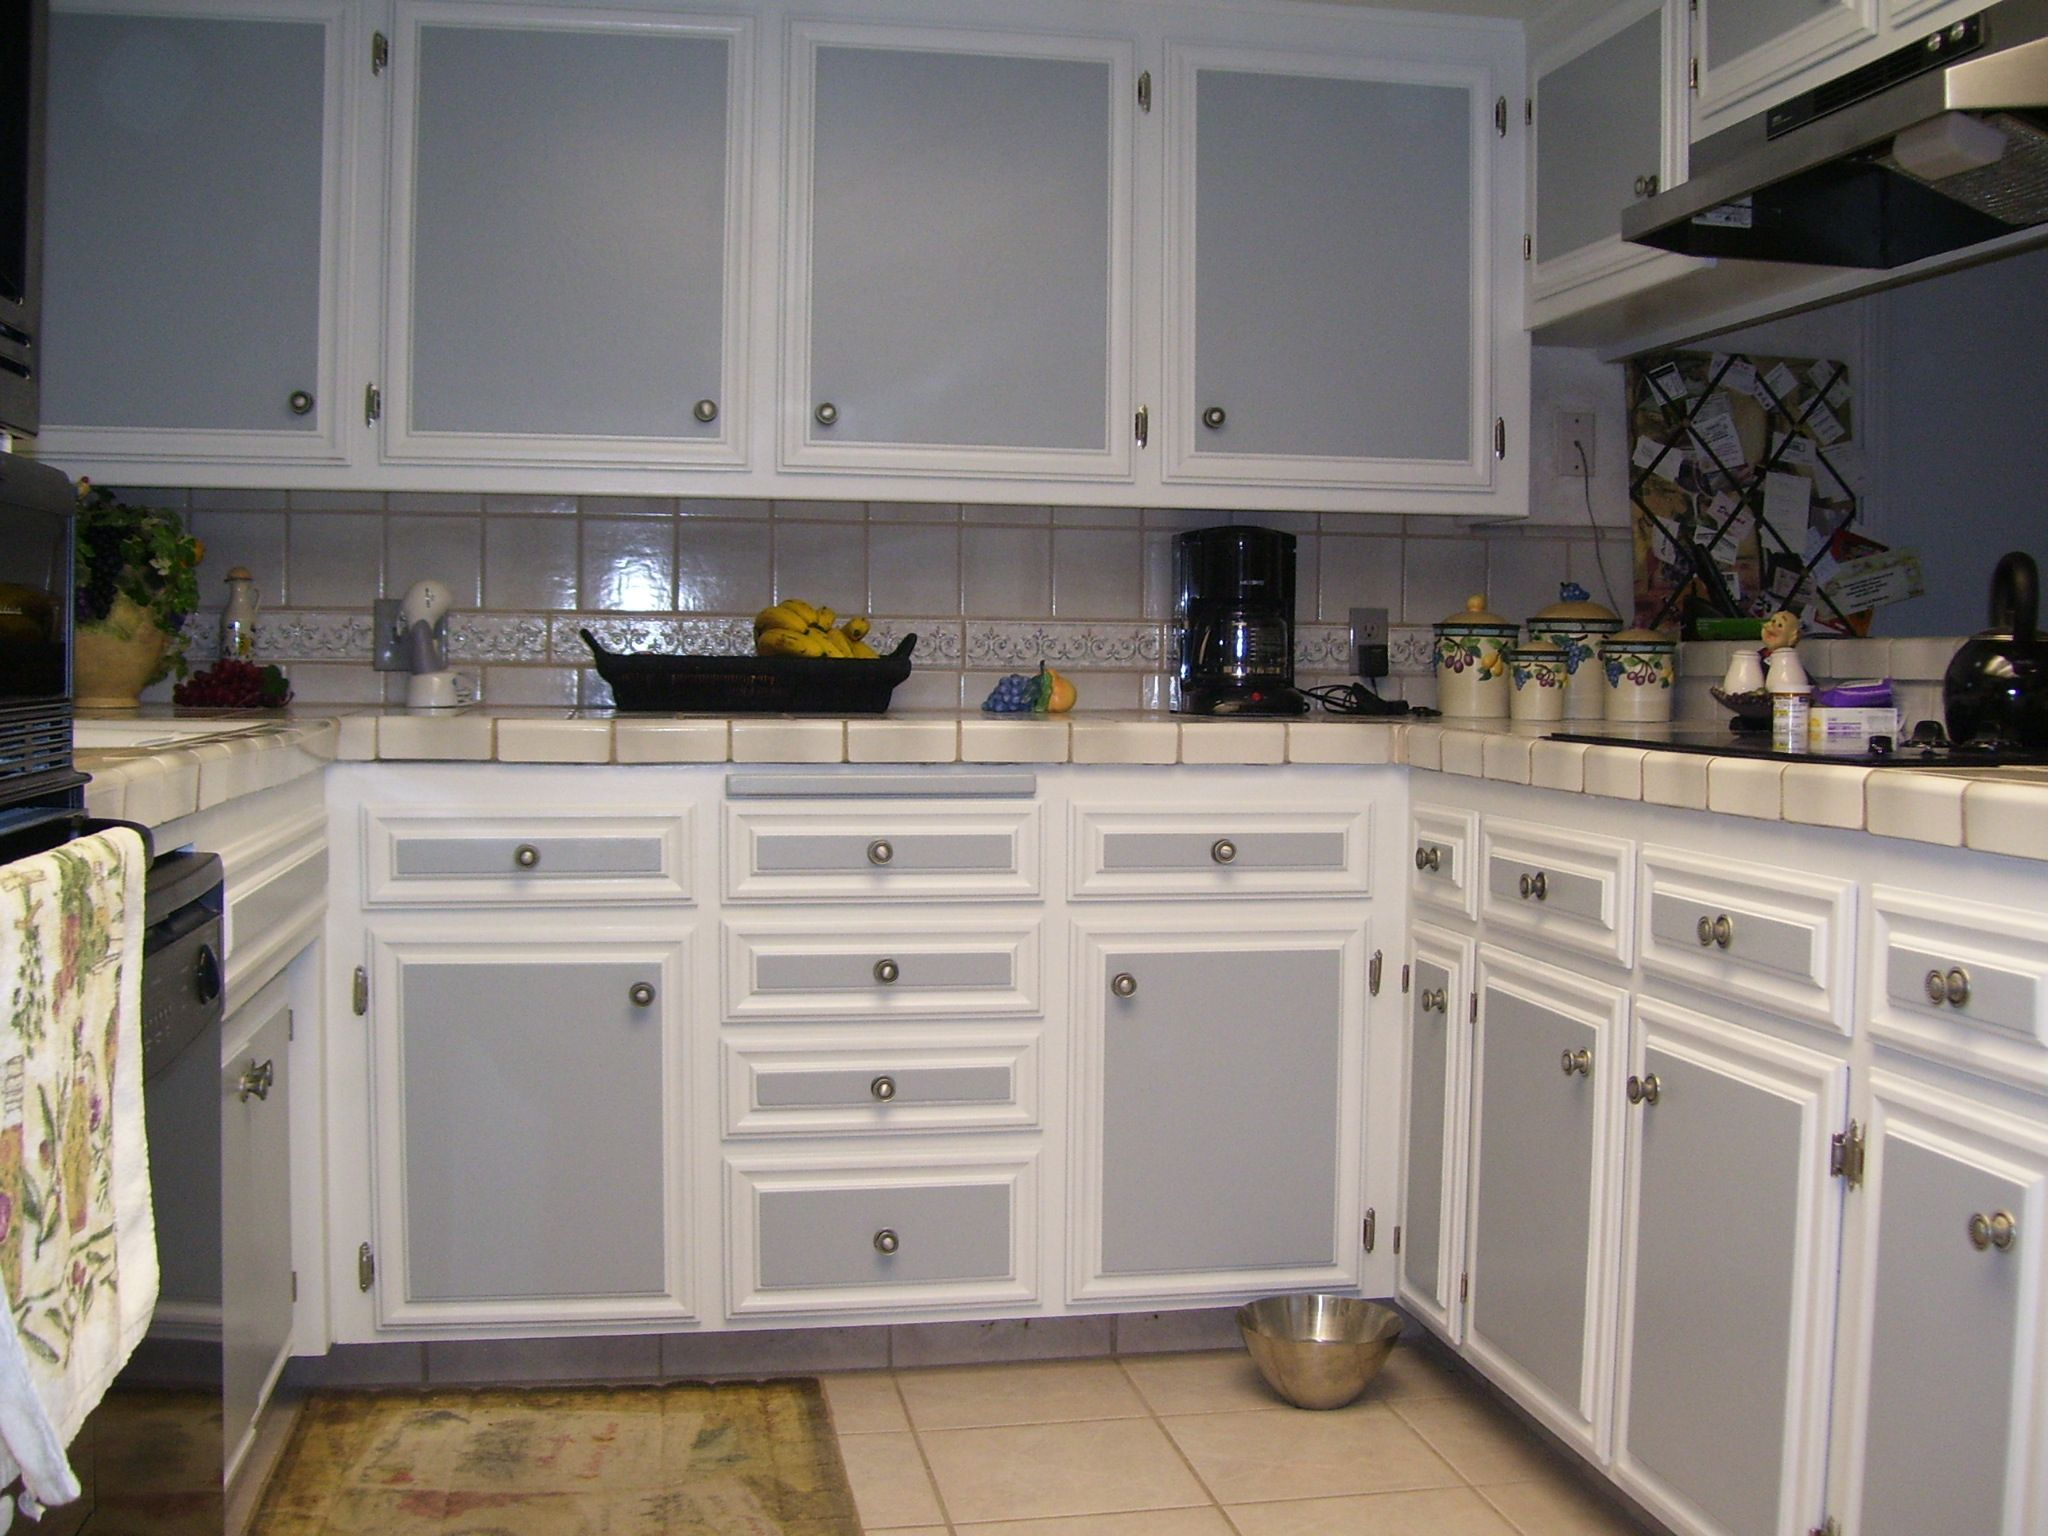 Kitchen White Kitchen Cabinet Grey Door Brown Tile Floor Ceramic Tile Wall Ba